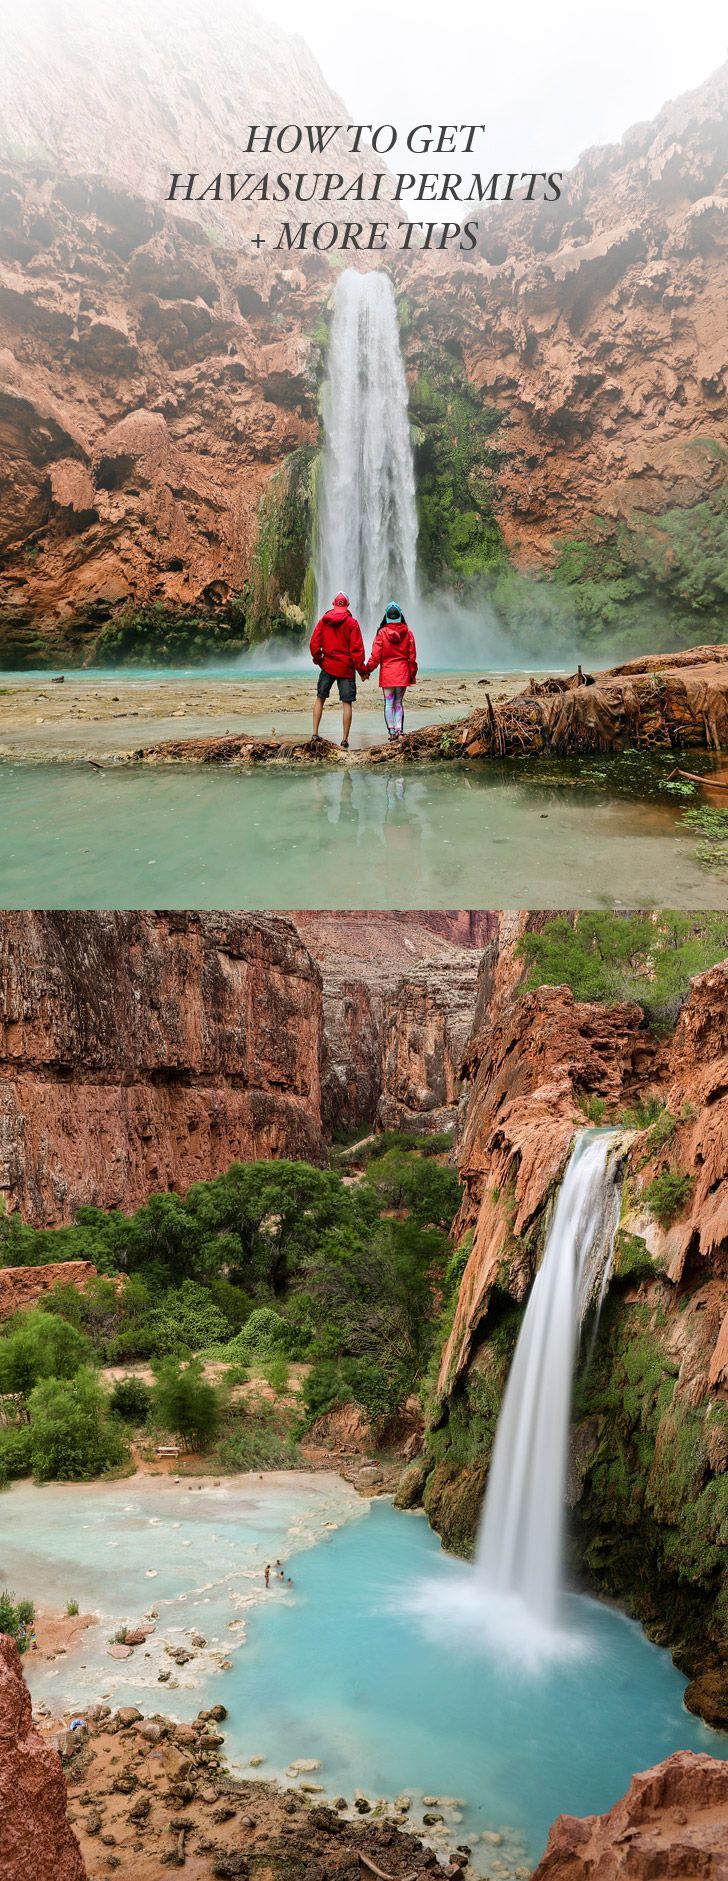 How to Get Havasupai Falls Reservations / Permits + More Tips For Your Hike // localadventurer.com